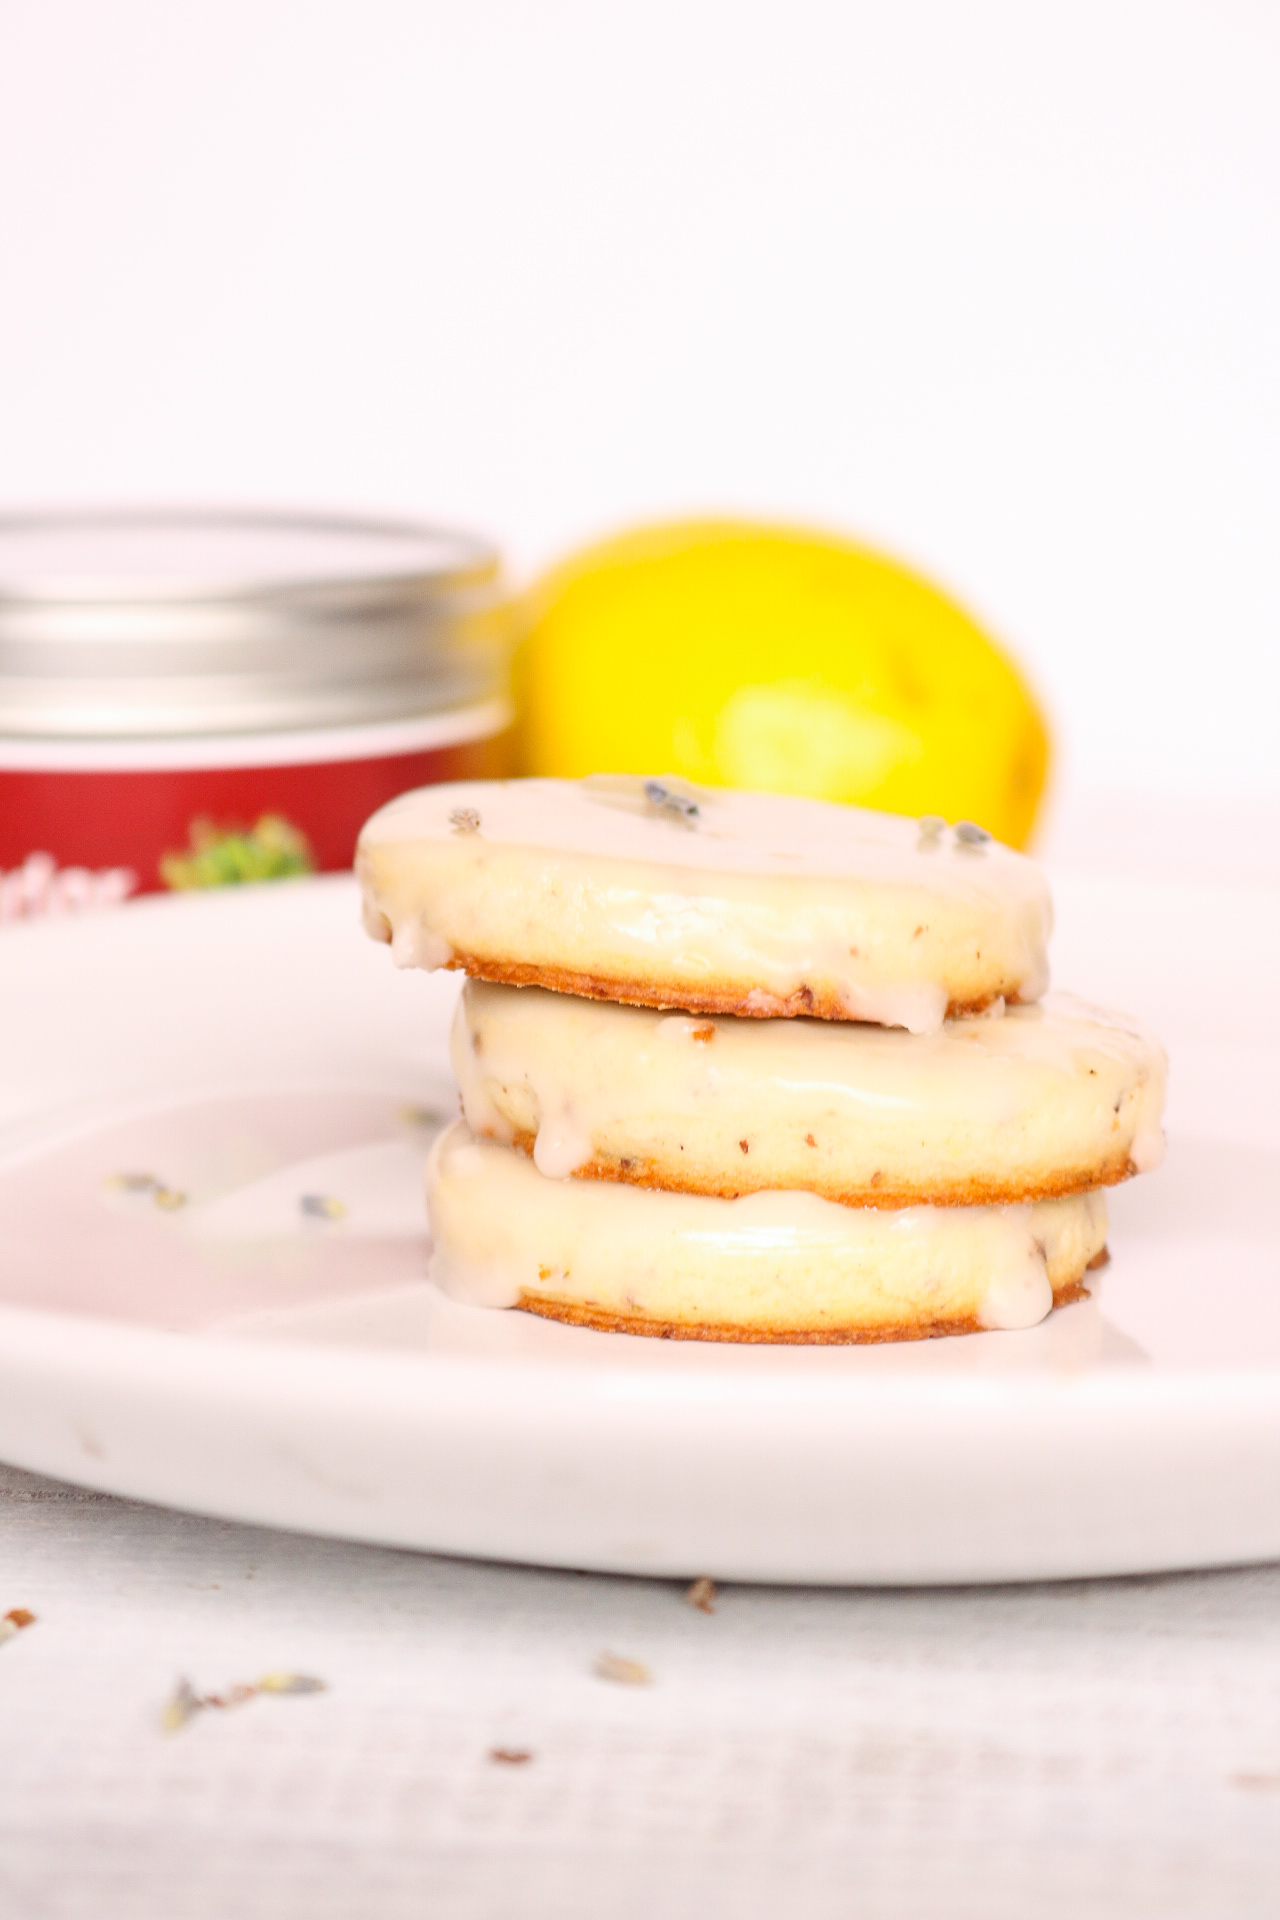 Vegan Lemon Lavender Sugar Cookies with Lemon Glaze